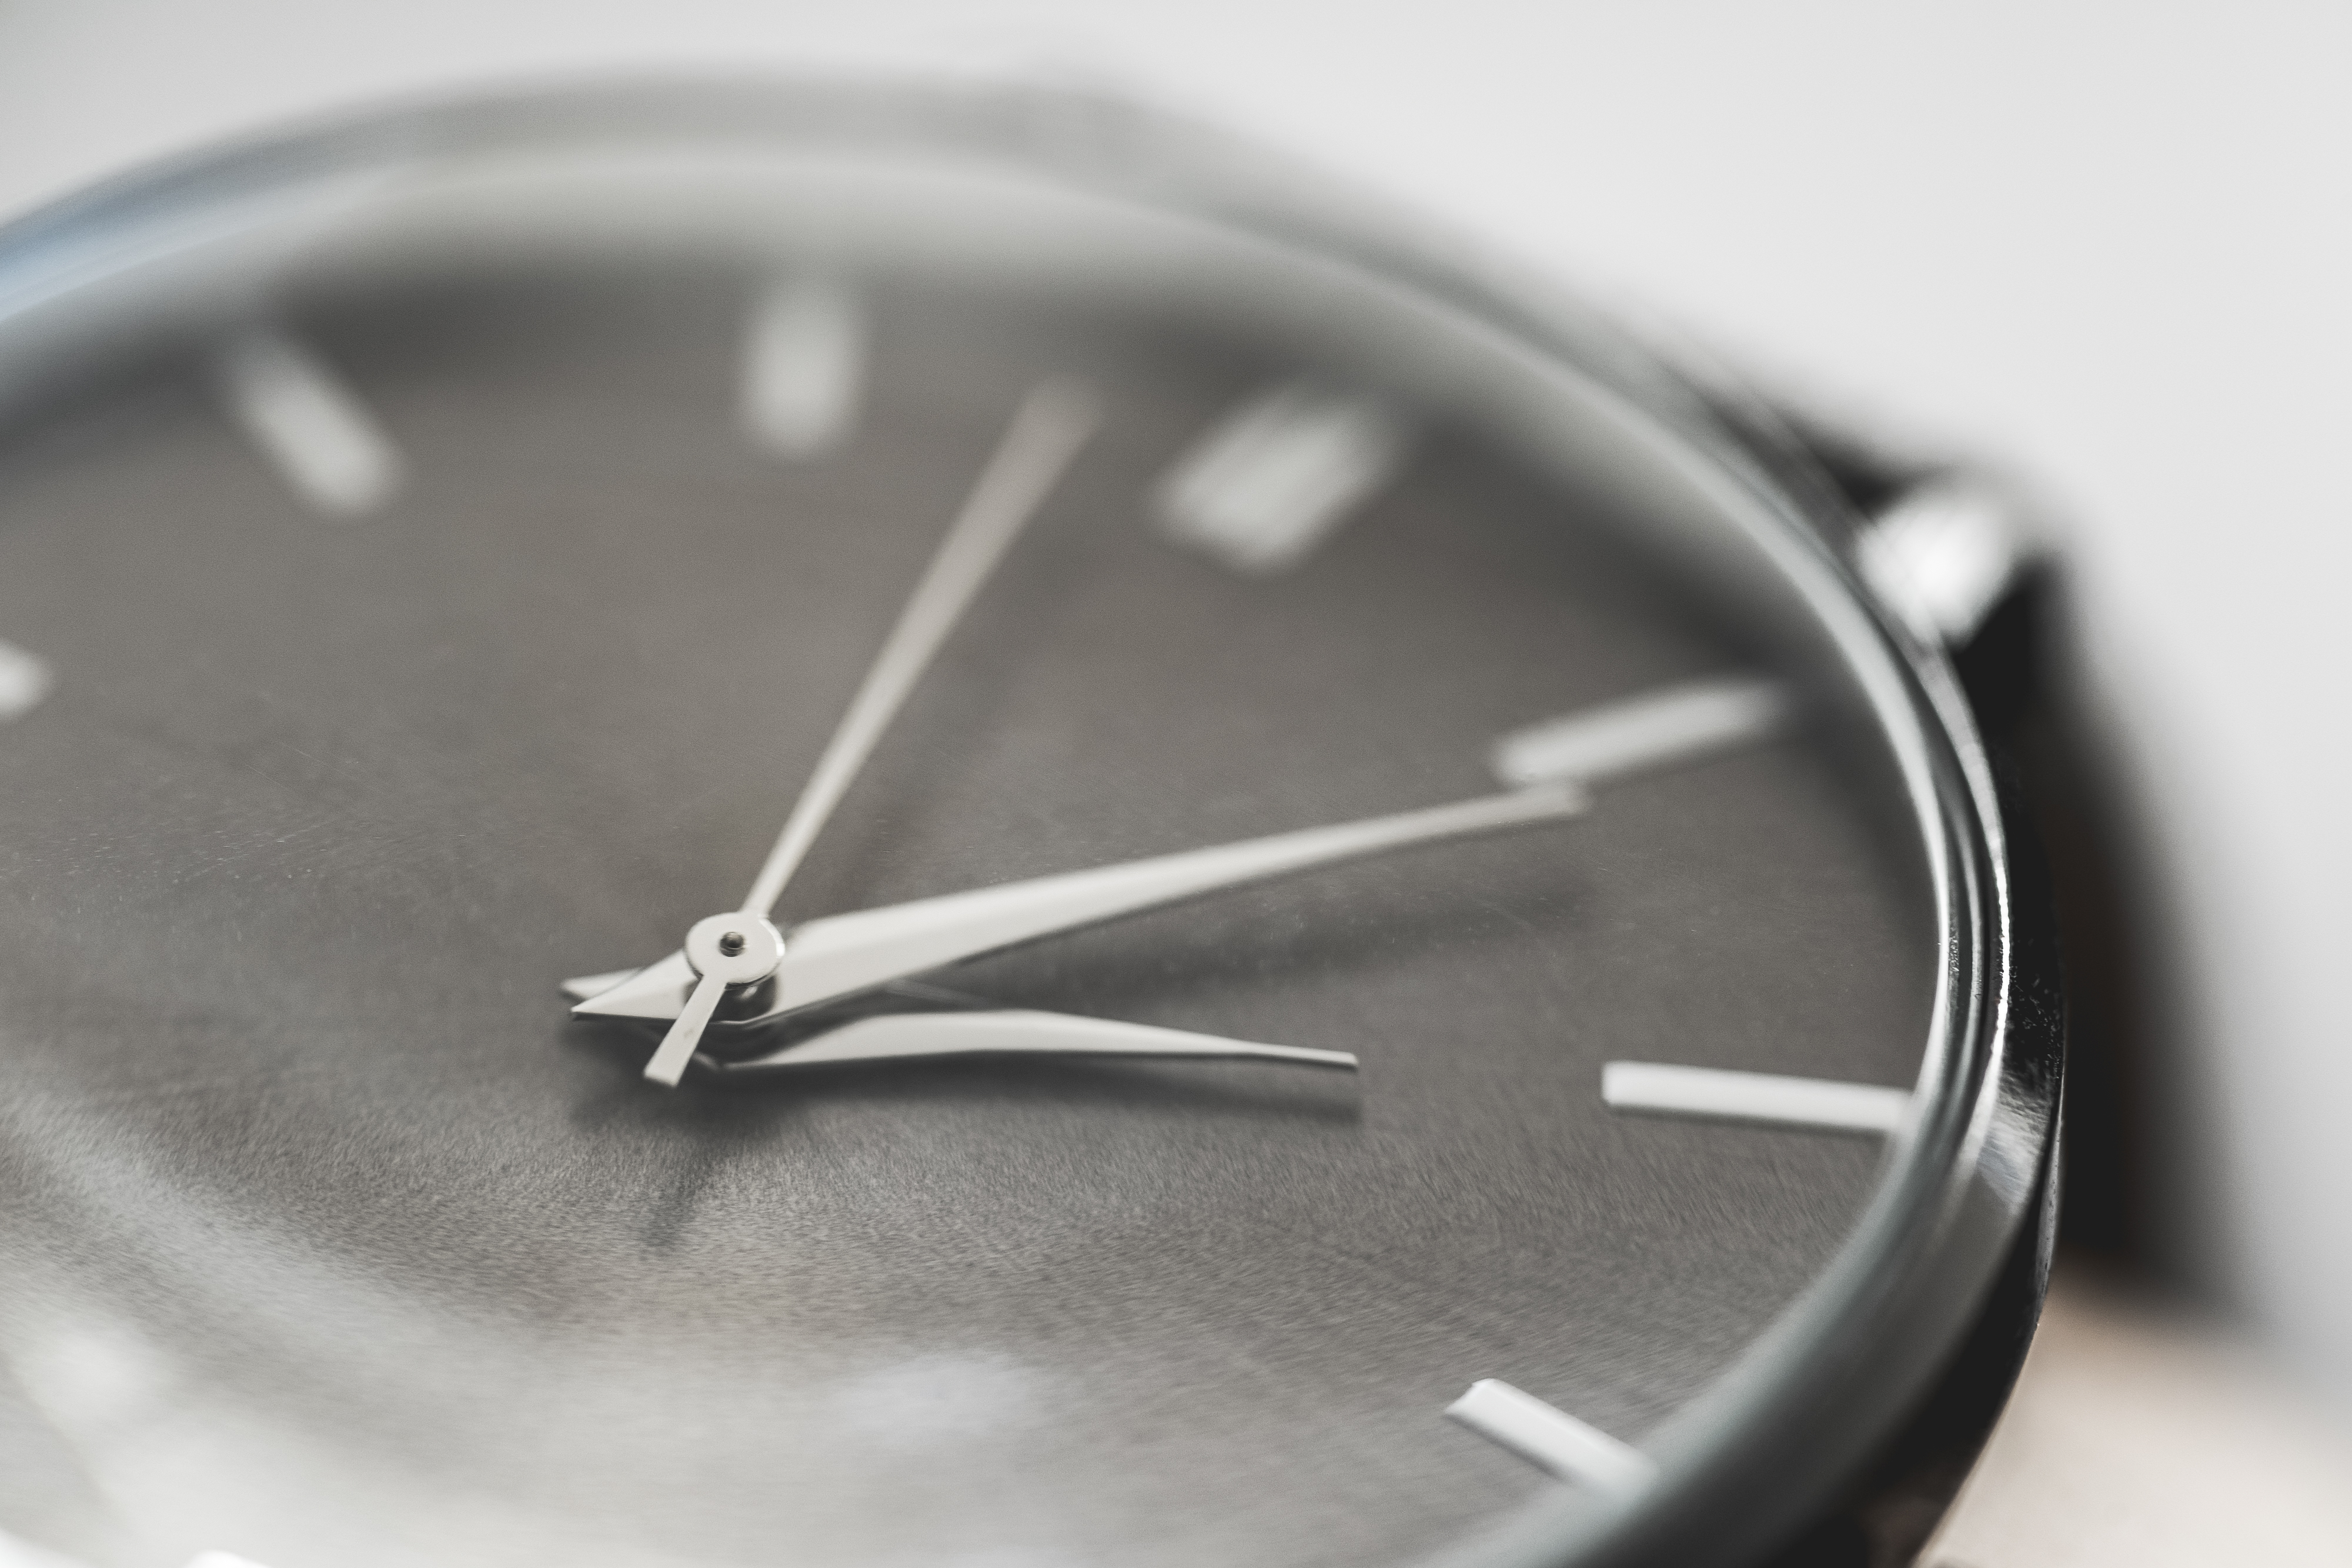 simple-classy-silver-watches-close-up-picjumbo-com